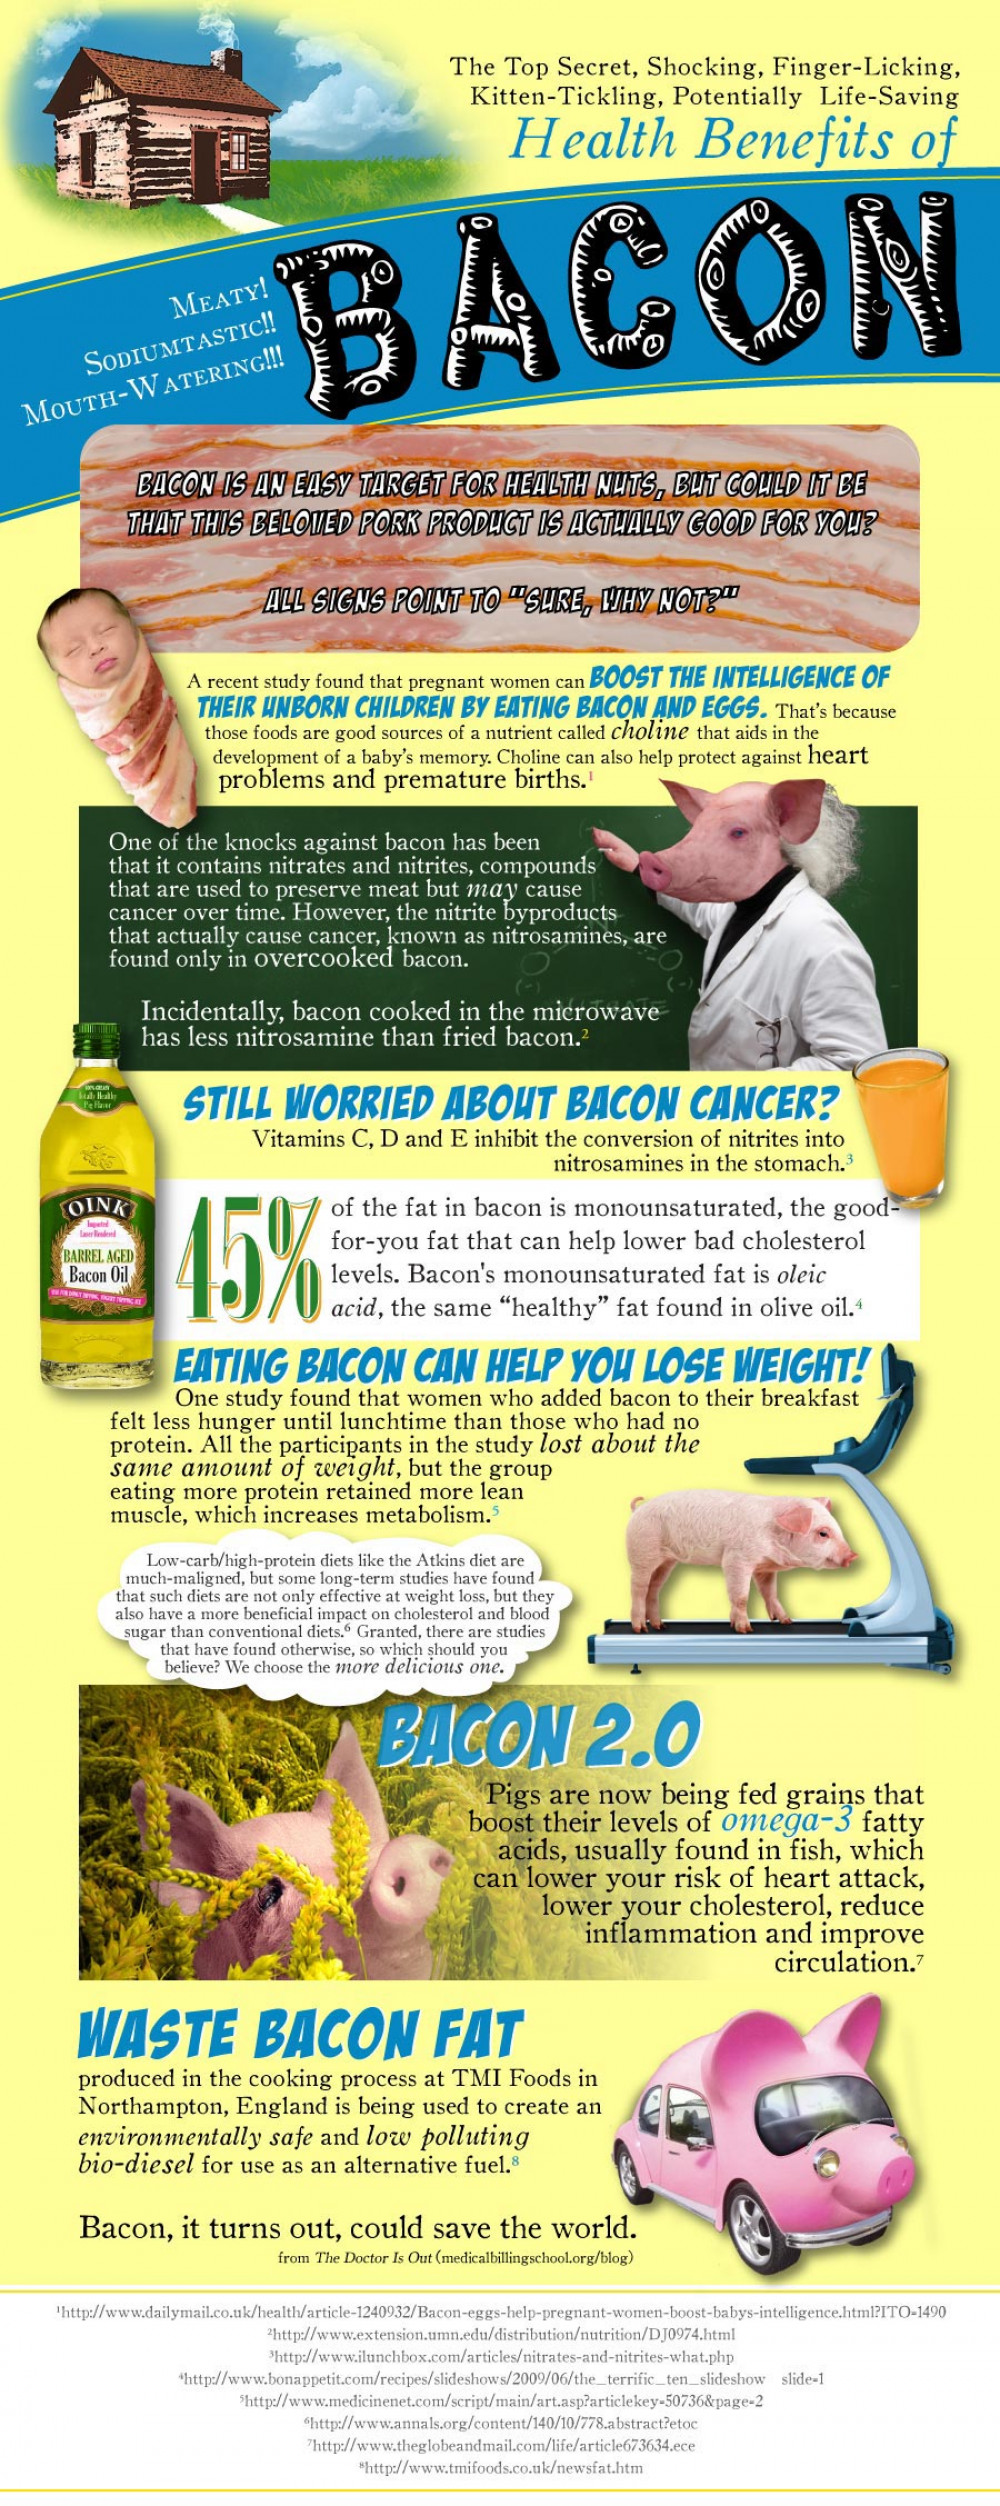 The Health Benefits of Bacon